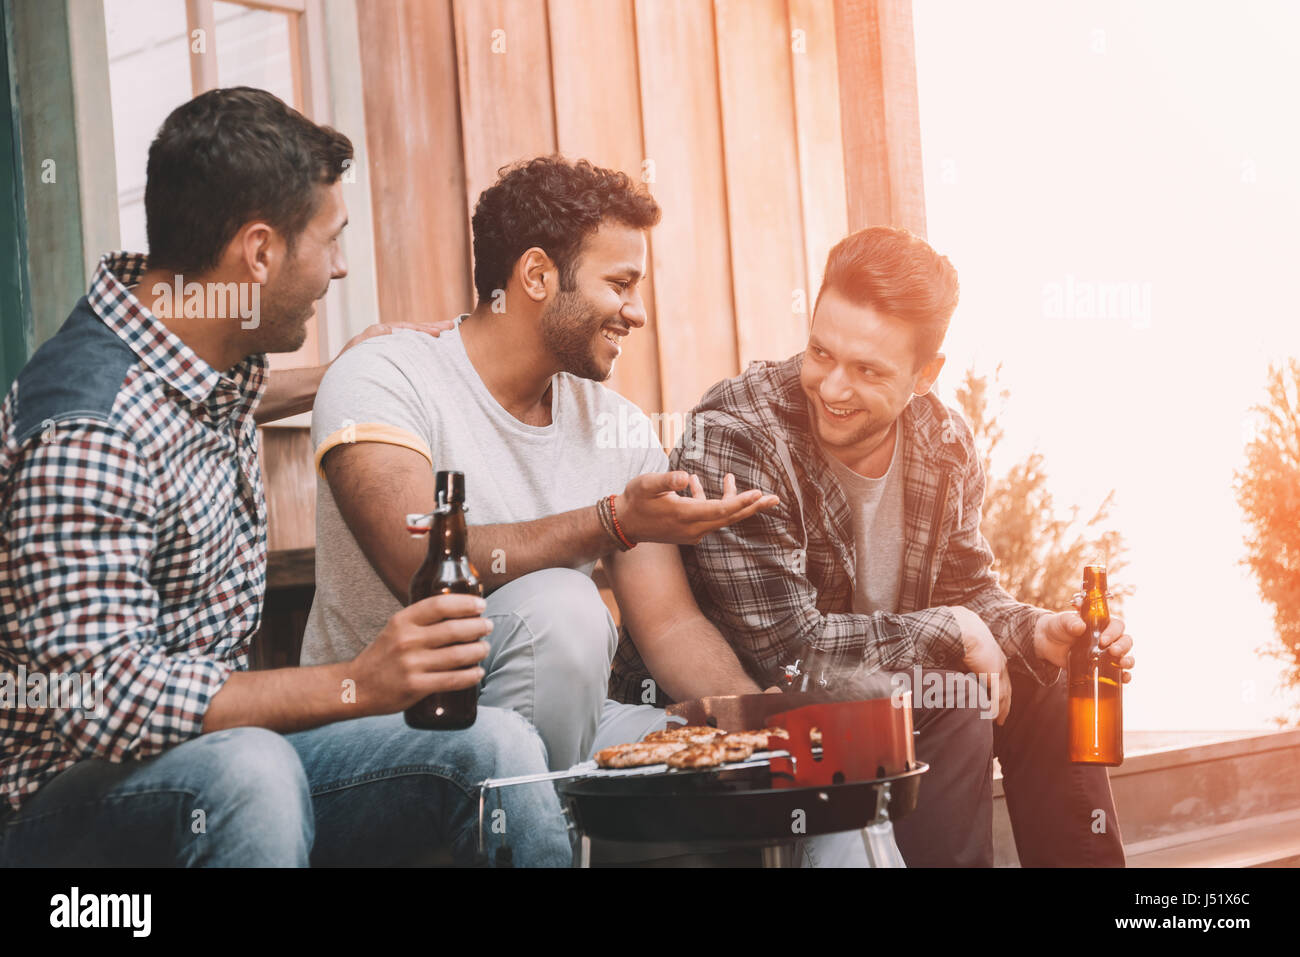 Smiling young friends drinking beer and talking while grilling meat outdoors - Stock Image